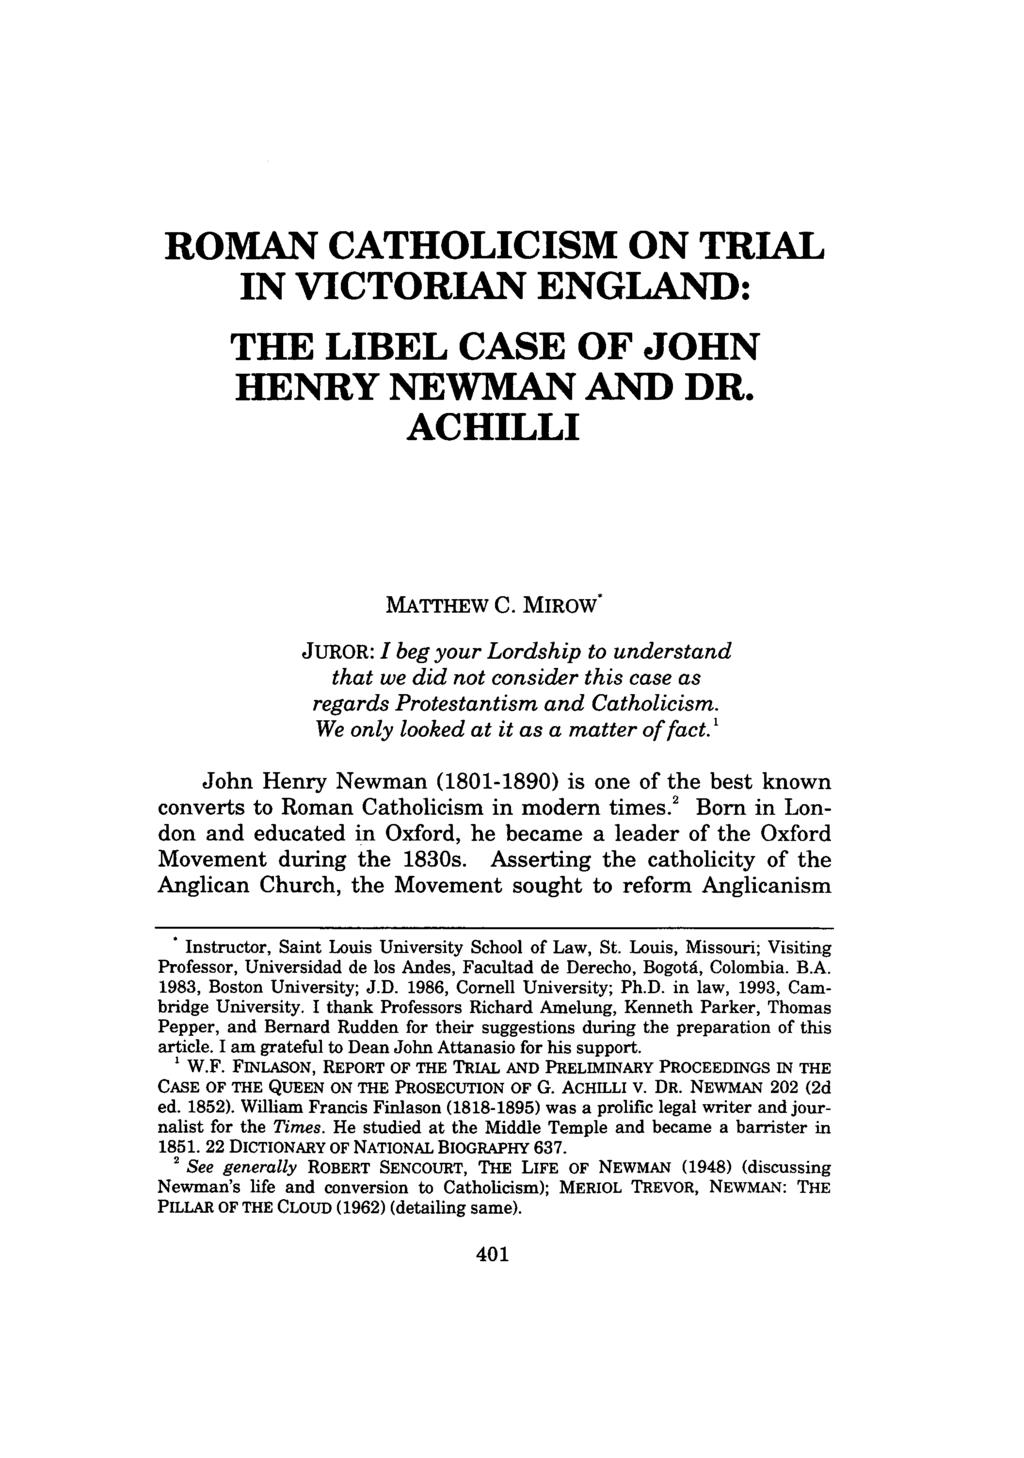 ROMAN CATHOLICISM ON TRIAL IN VICTORIAN ENGLAND: THE LIBEL CASE OF JOHN HENRY NEWMAN AND DR. ACHILLI MATTHEW C.